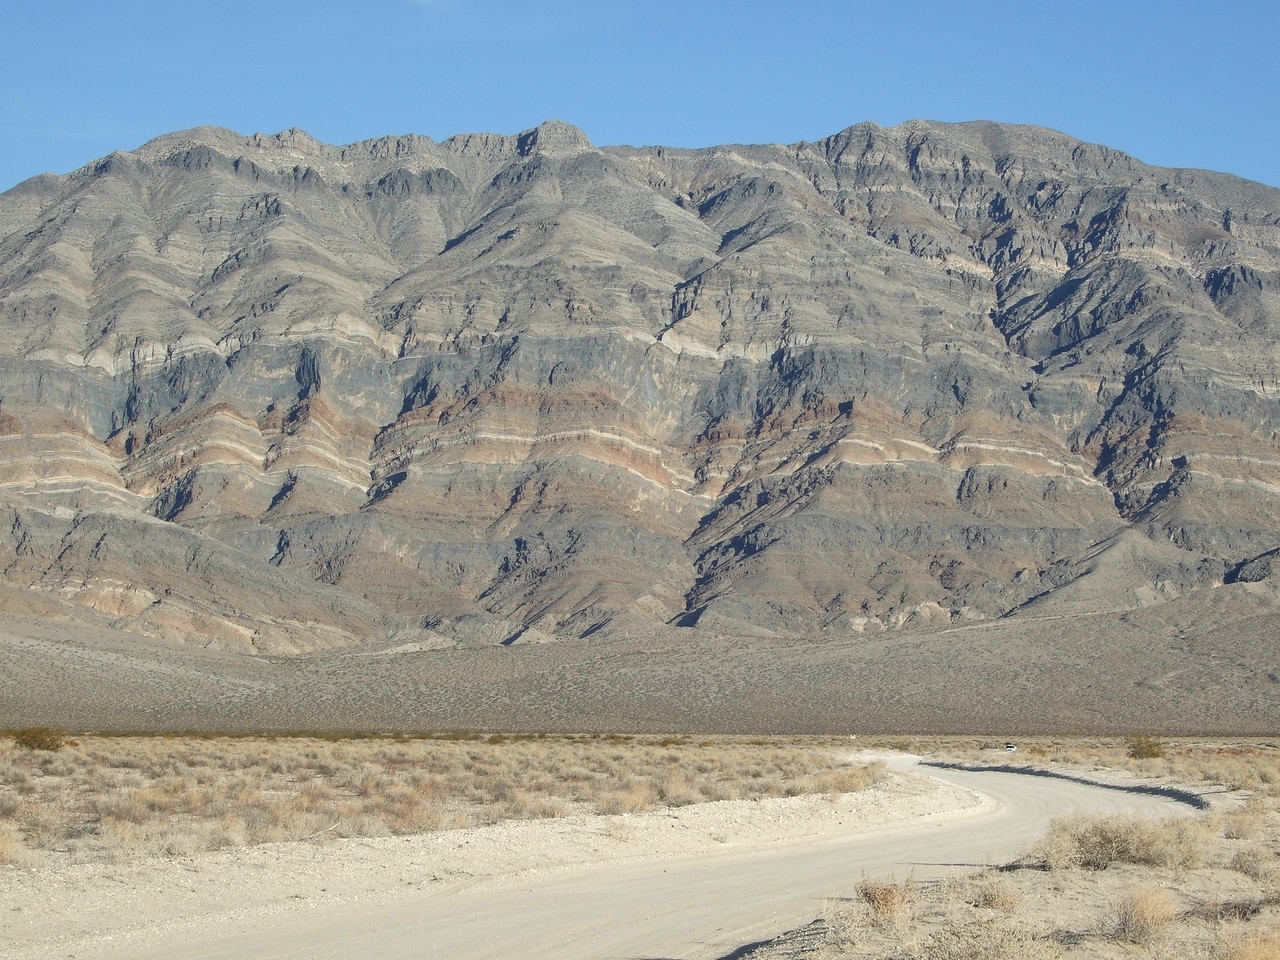 Another photo of the mountains. This is the Last Chance Range.